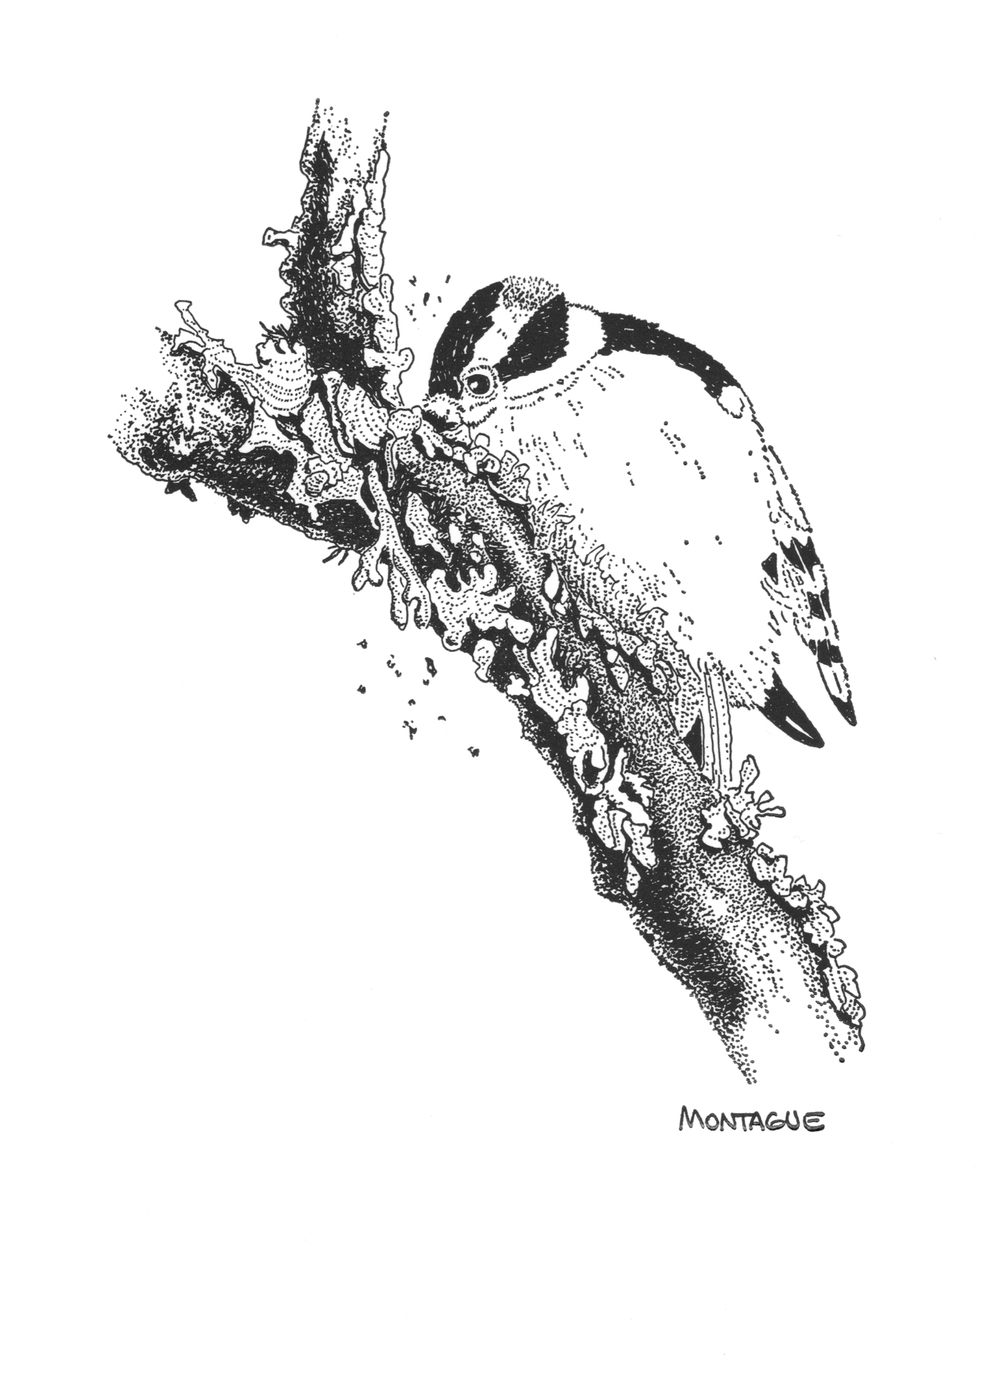 Downy Woodpecker • © Fred Montague  $50 • Letterpress Print • image 6 x 9 • matted 16 x 20  Edition size: 880 • status: available